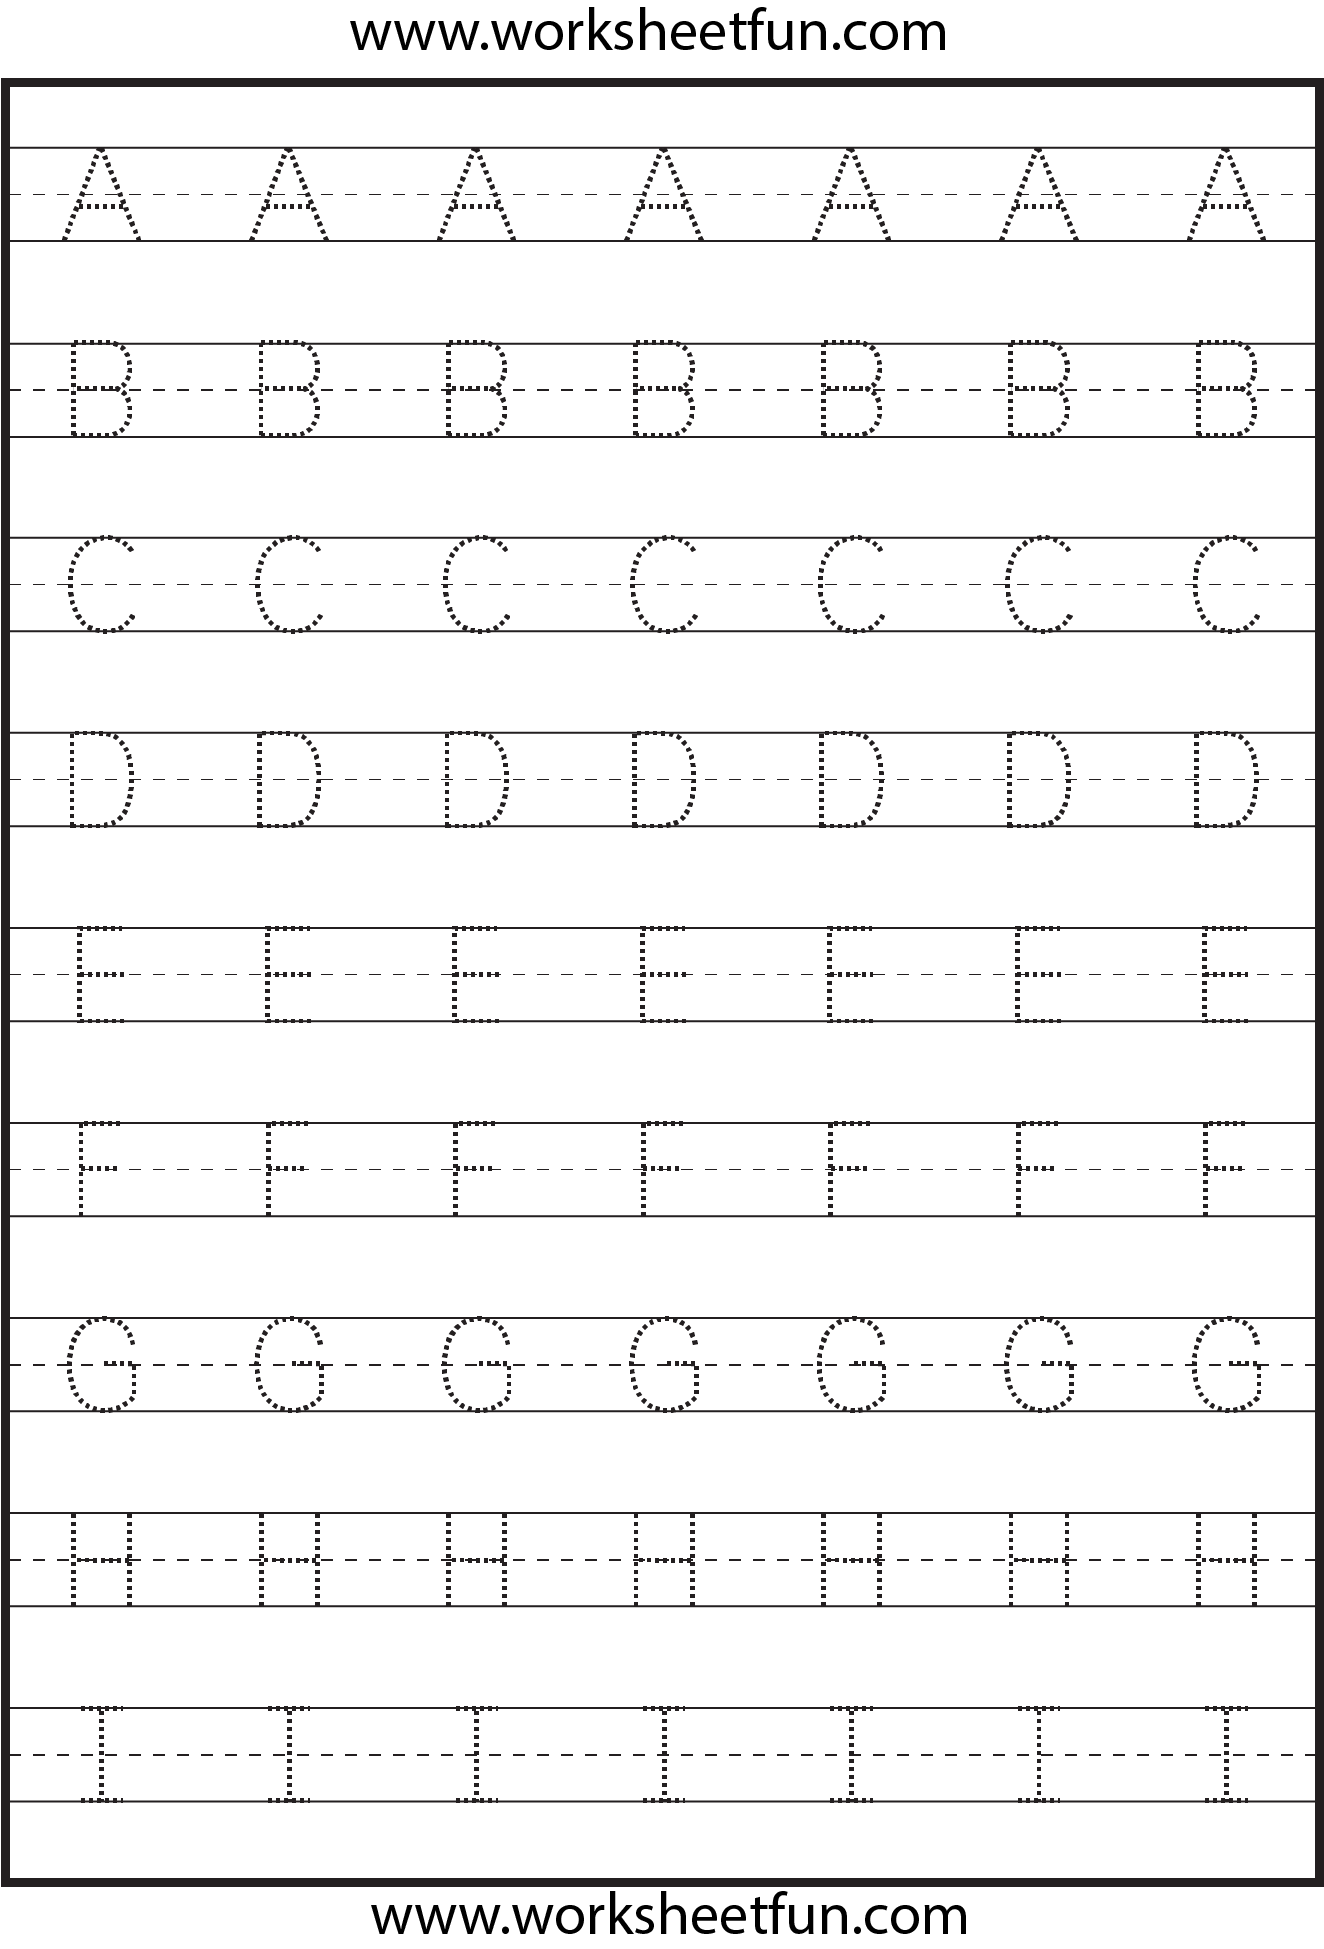 Worksheets Uppercase Tracing tracing uppercase letters capital 3 worksheets letter tracing